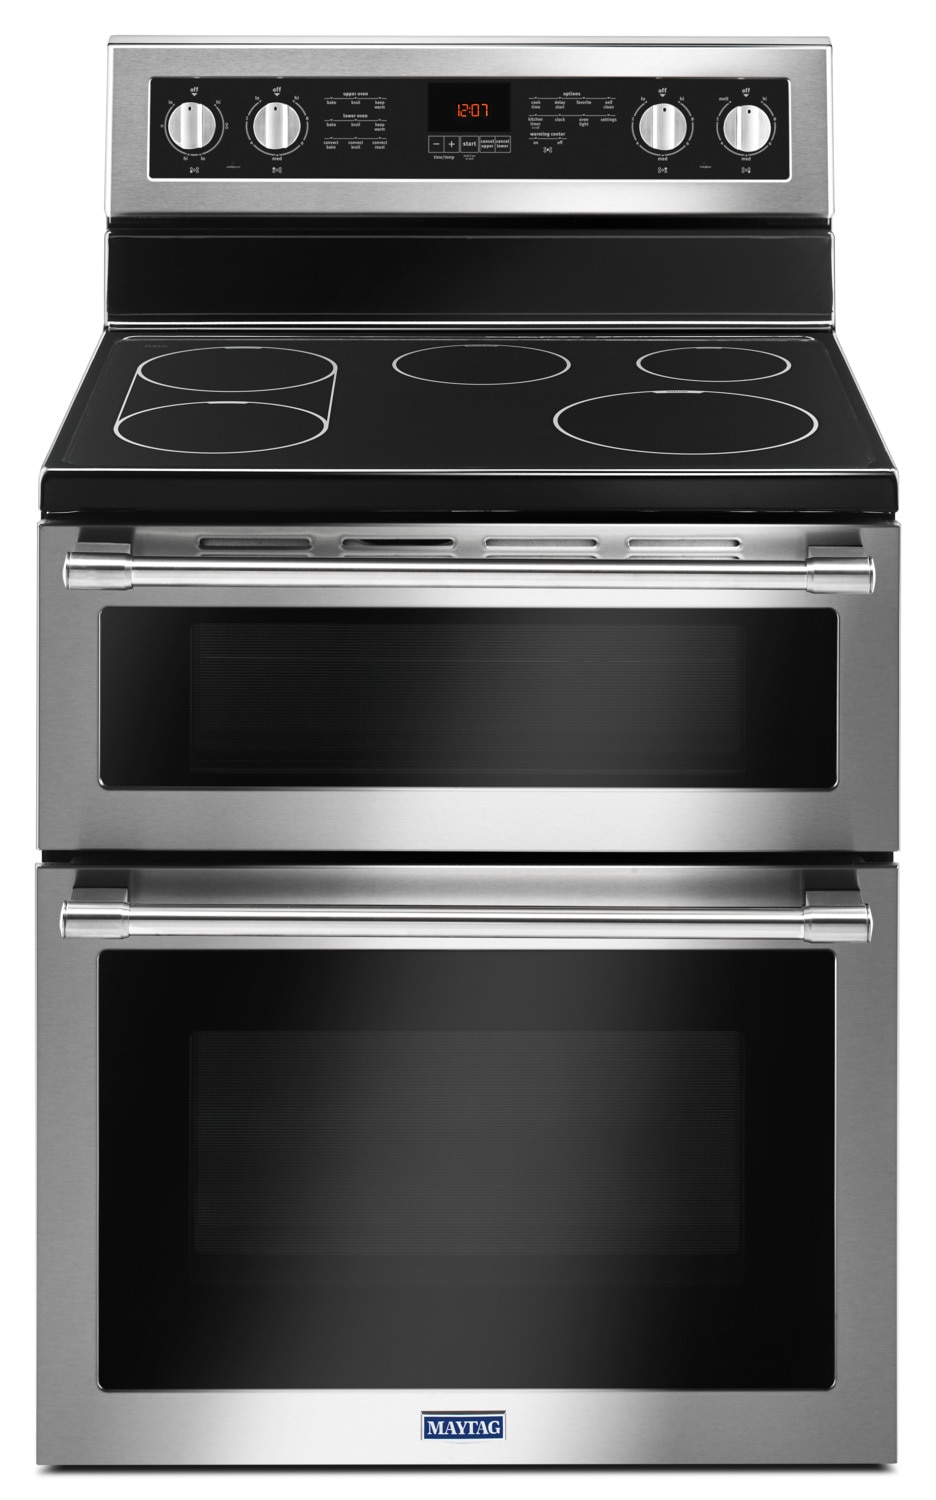 Maytag 6.7 Cu. Ft. Double Oven Electric Range with True Convection – YMET8800FZ